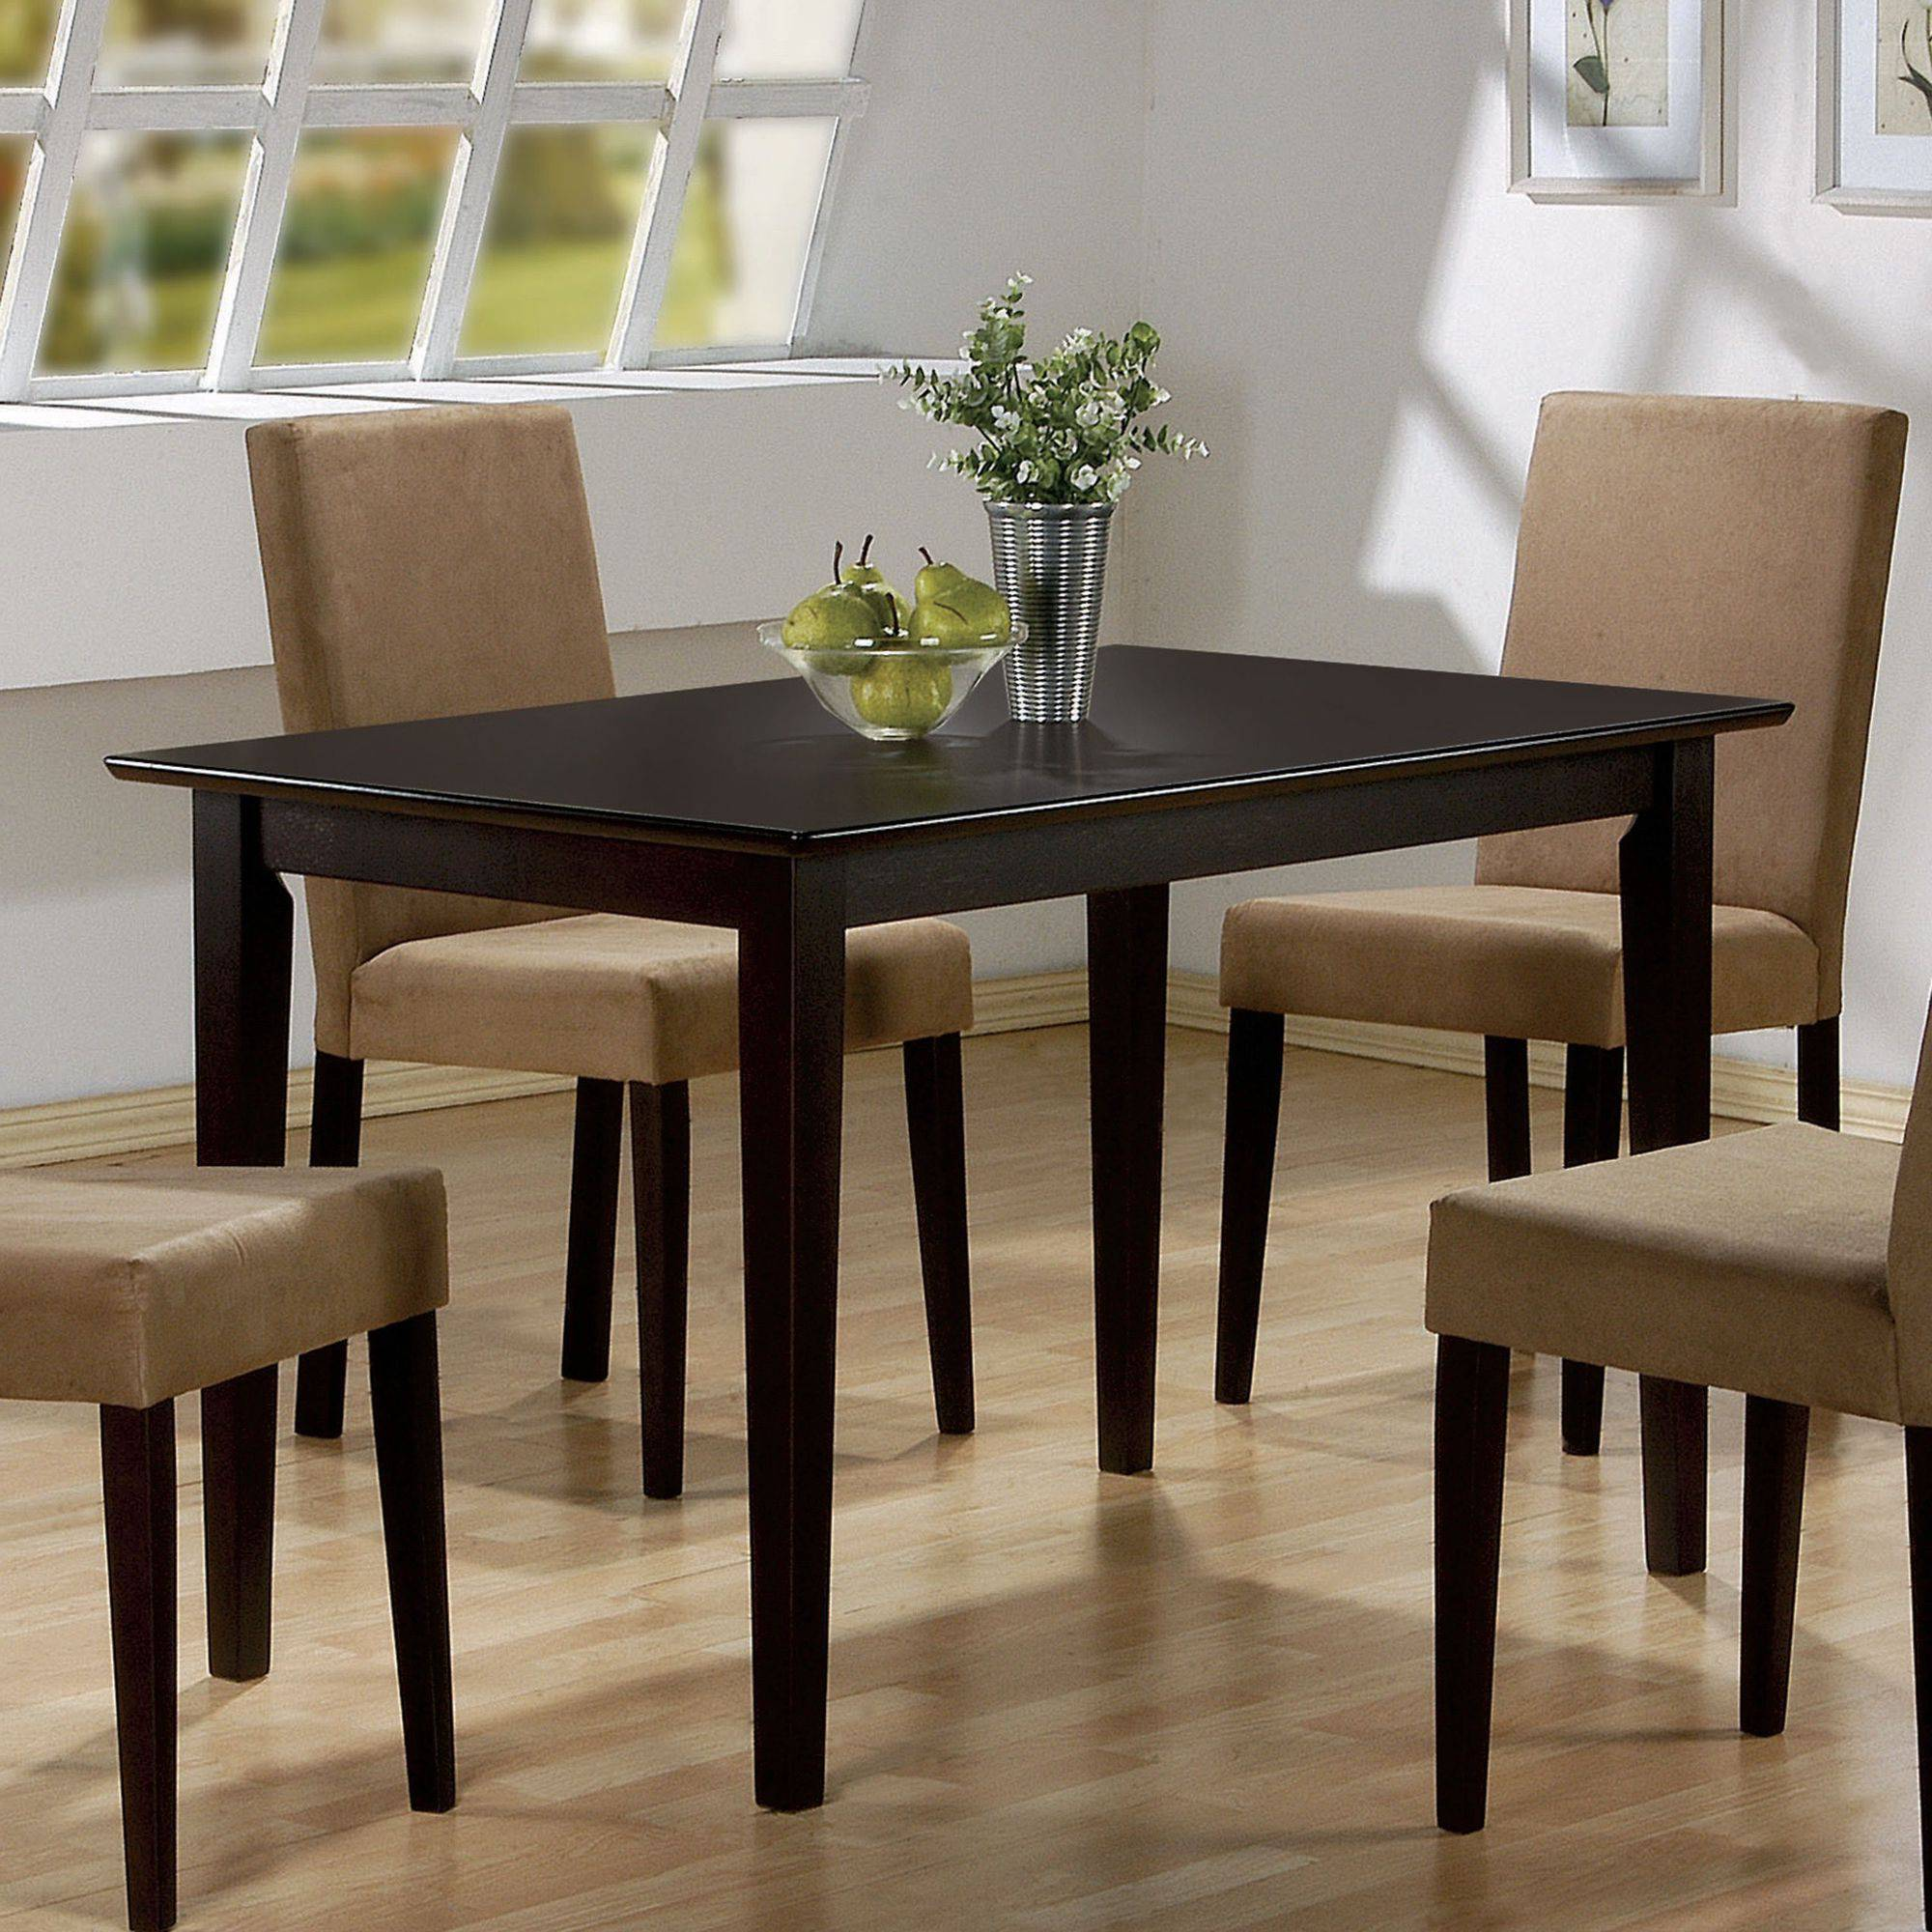 Coaster Company Clayton Dining Table - Walmart.com